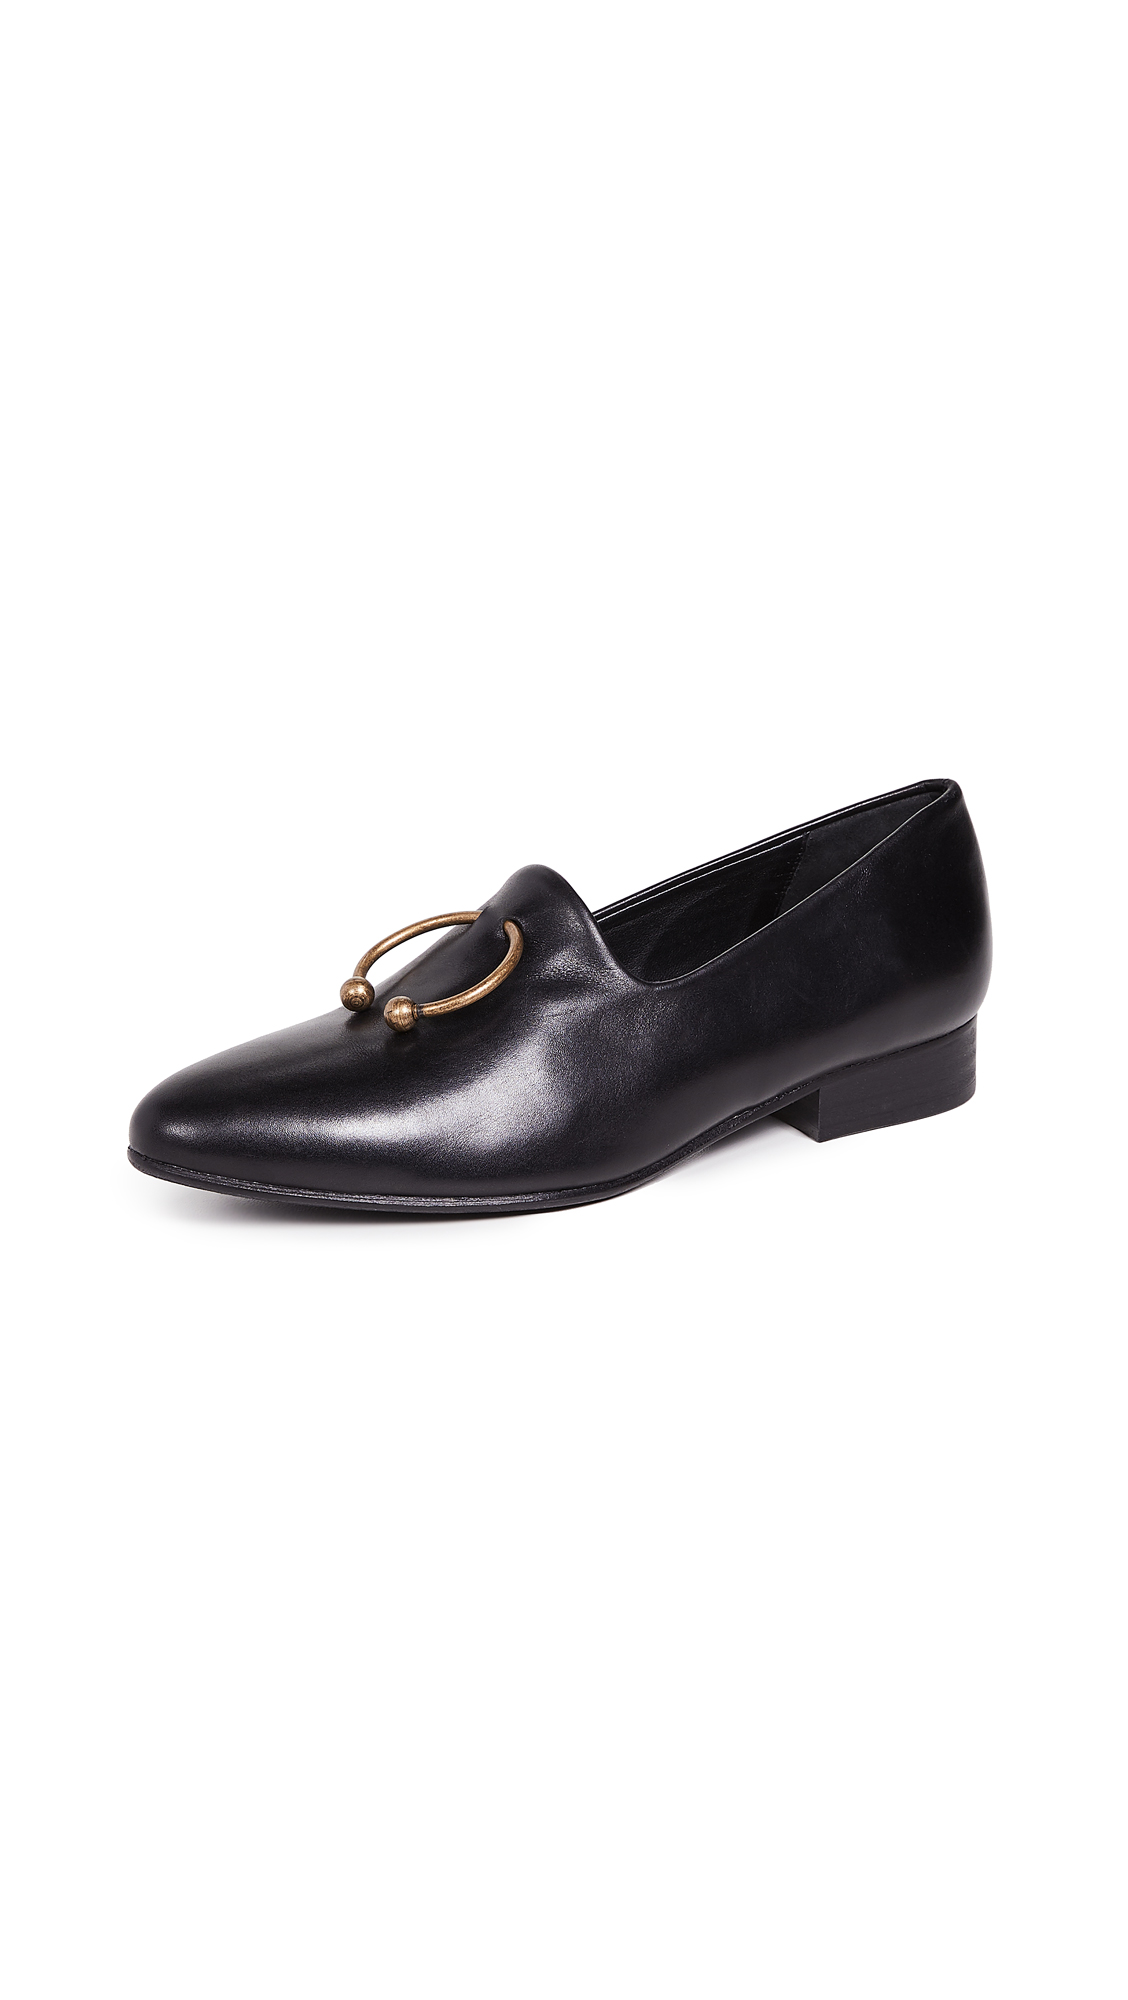 Freda Salvador Lane Loafers - Black